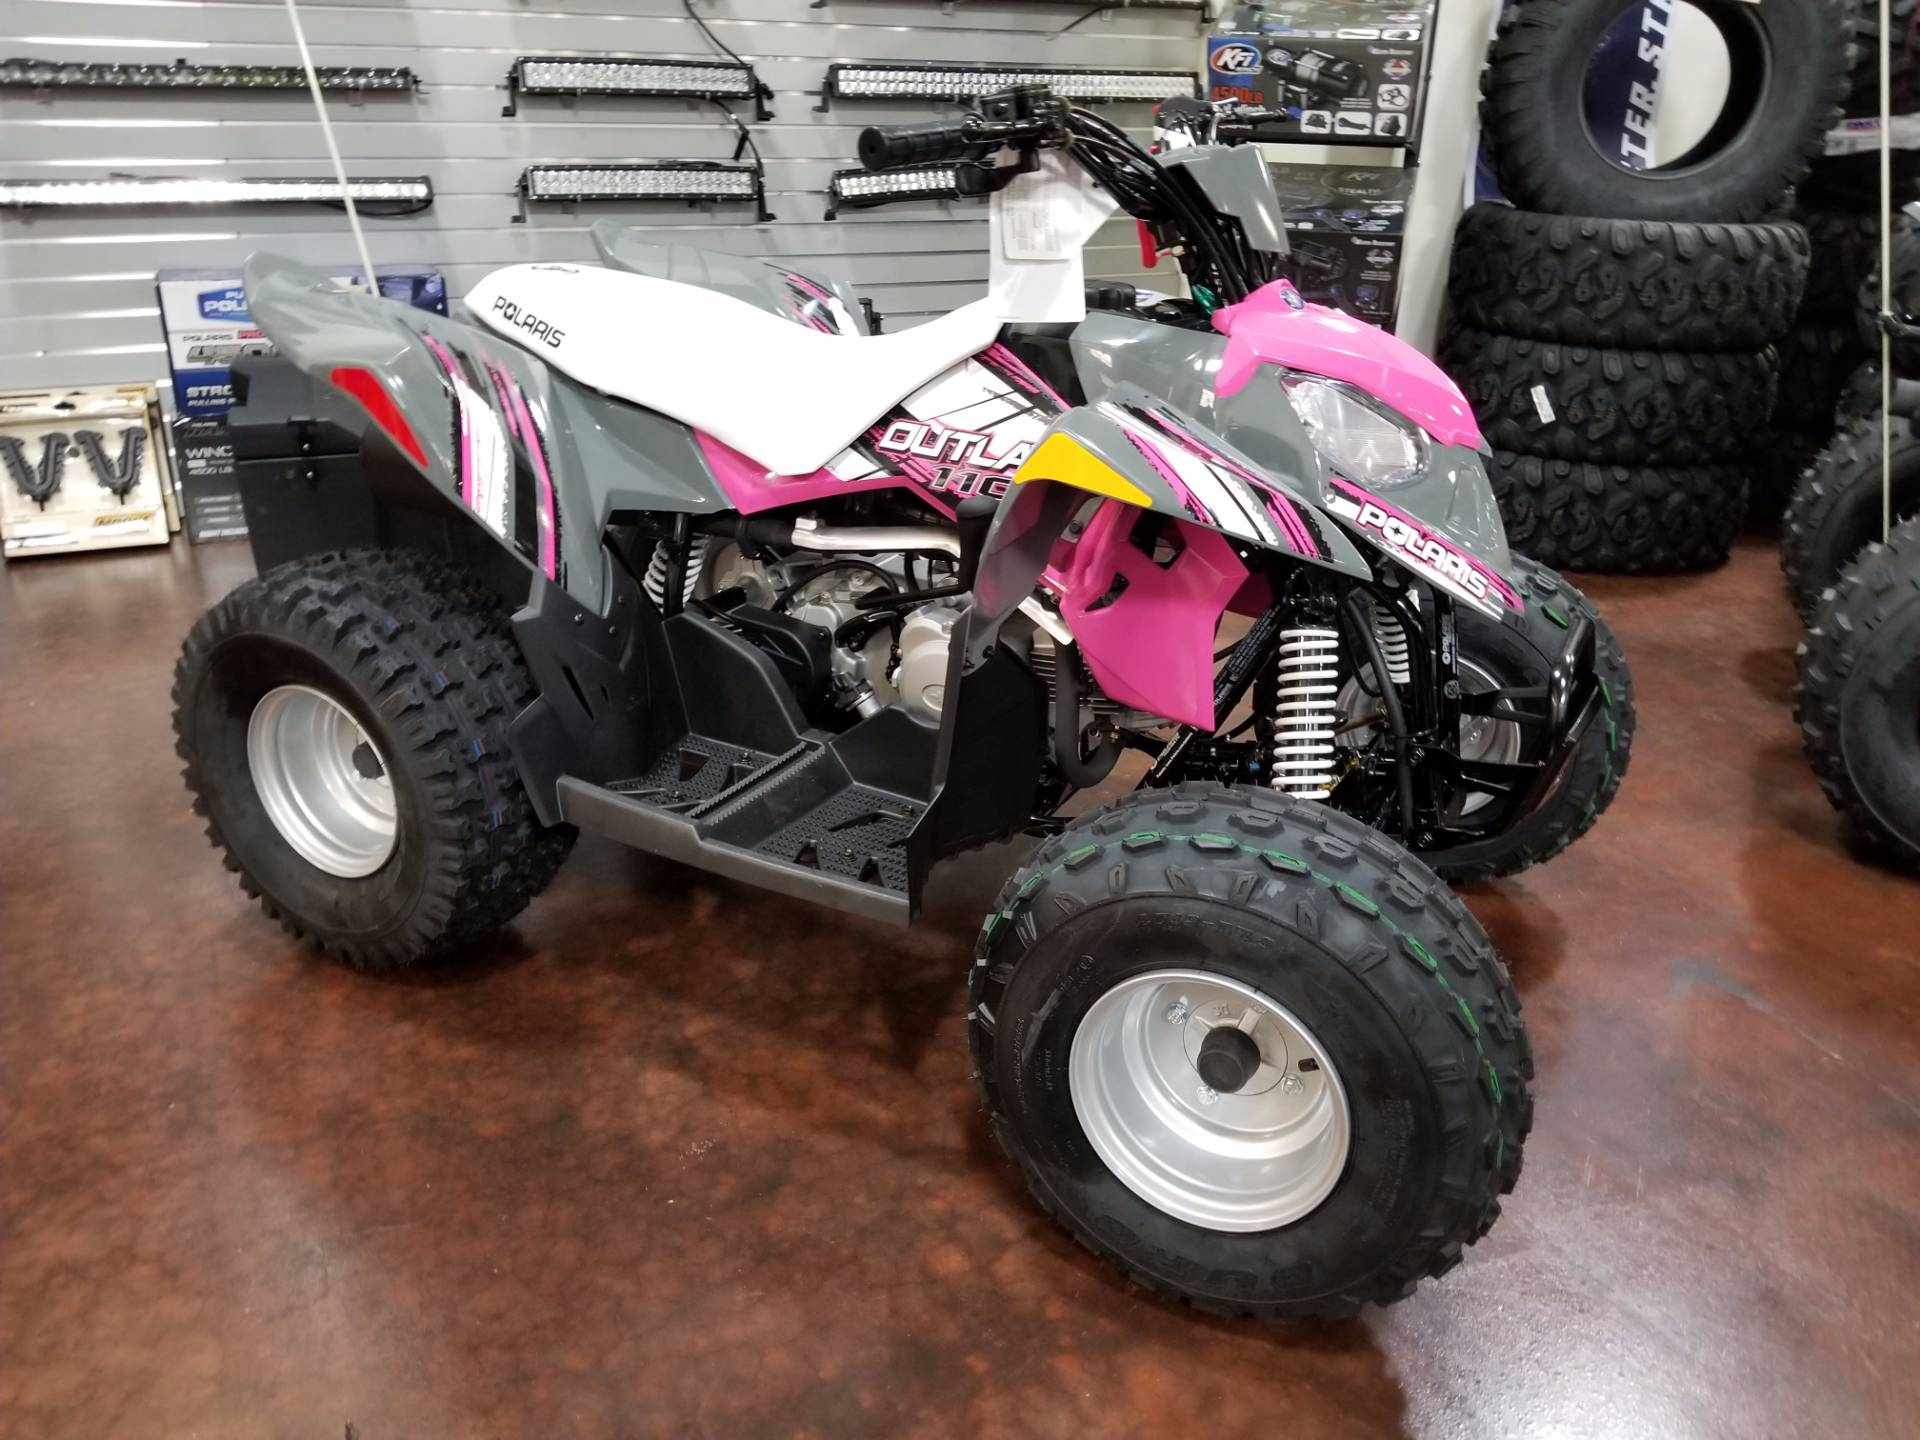 2019 Polaris Outlaw 110 in Statesville, North Carolina - Photo 1